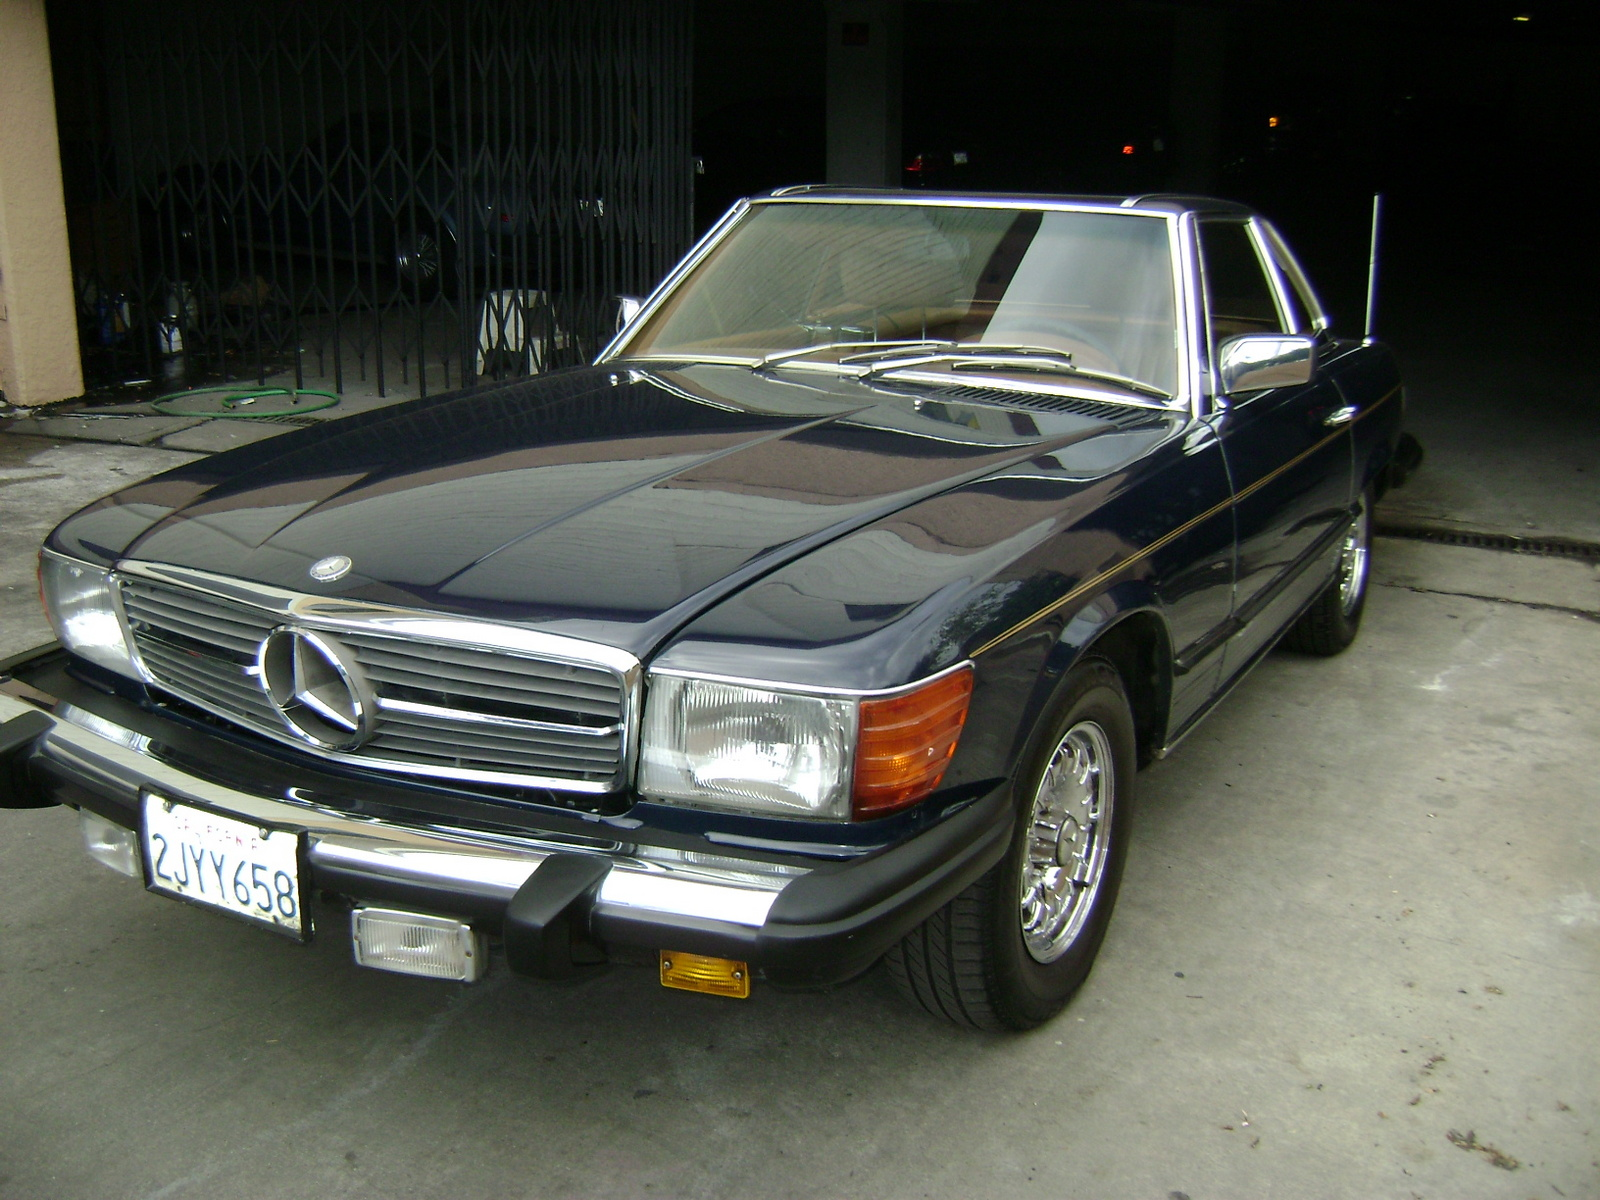 used mercedes benz 450 class for sale cargurus ForMercedes Benz For Sale Cargurus